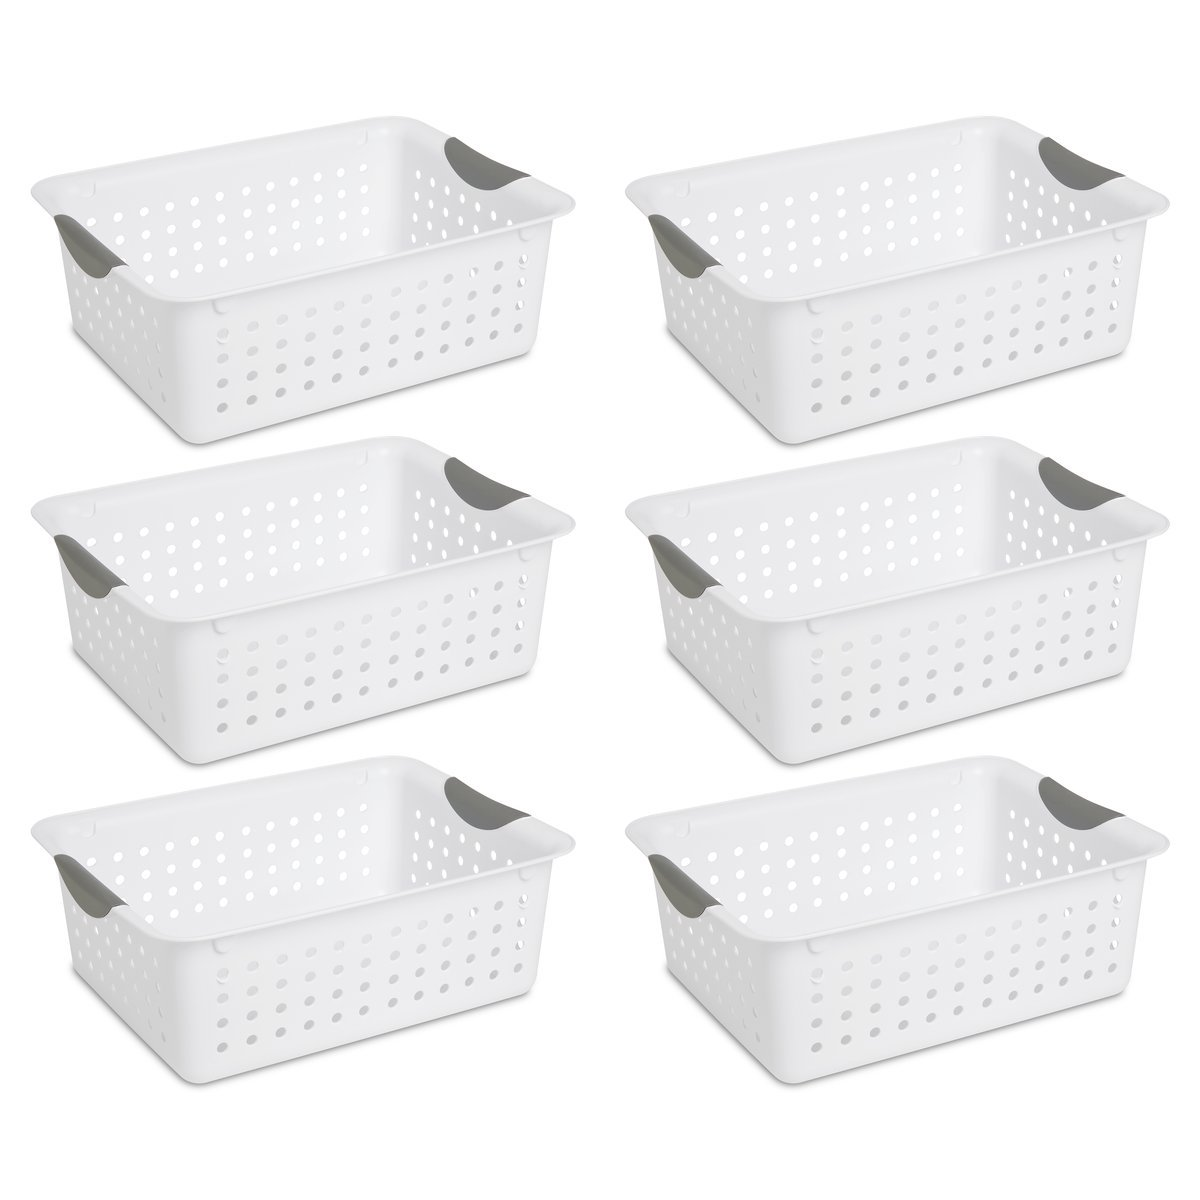 Sterilite 16248006 Medium Ultra Basket, White Basket w/ Titanium Inserts, 6-Pack